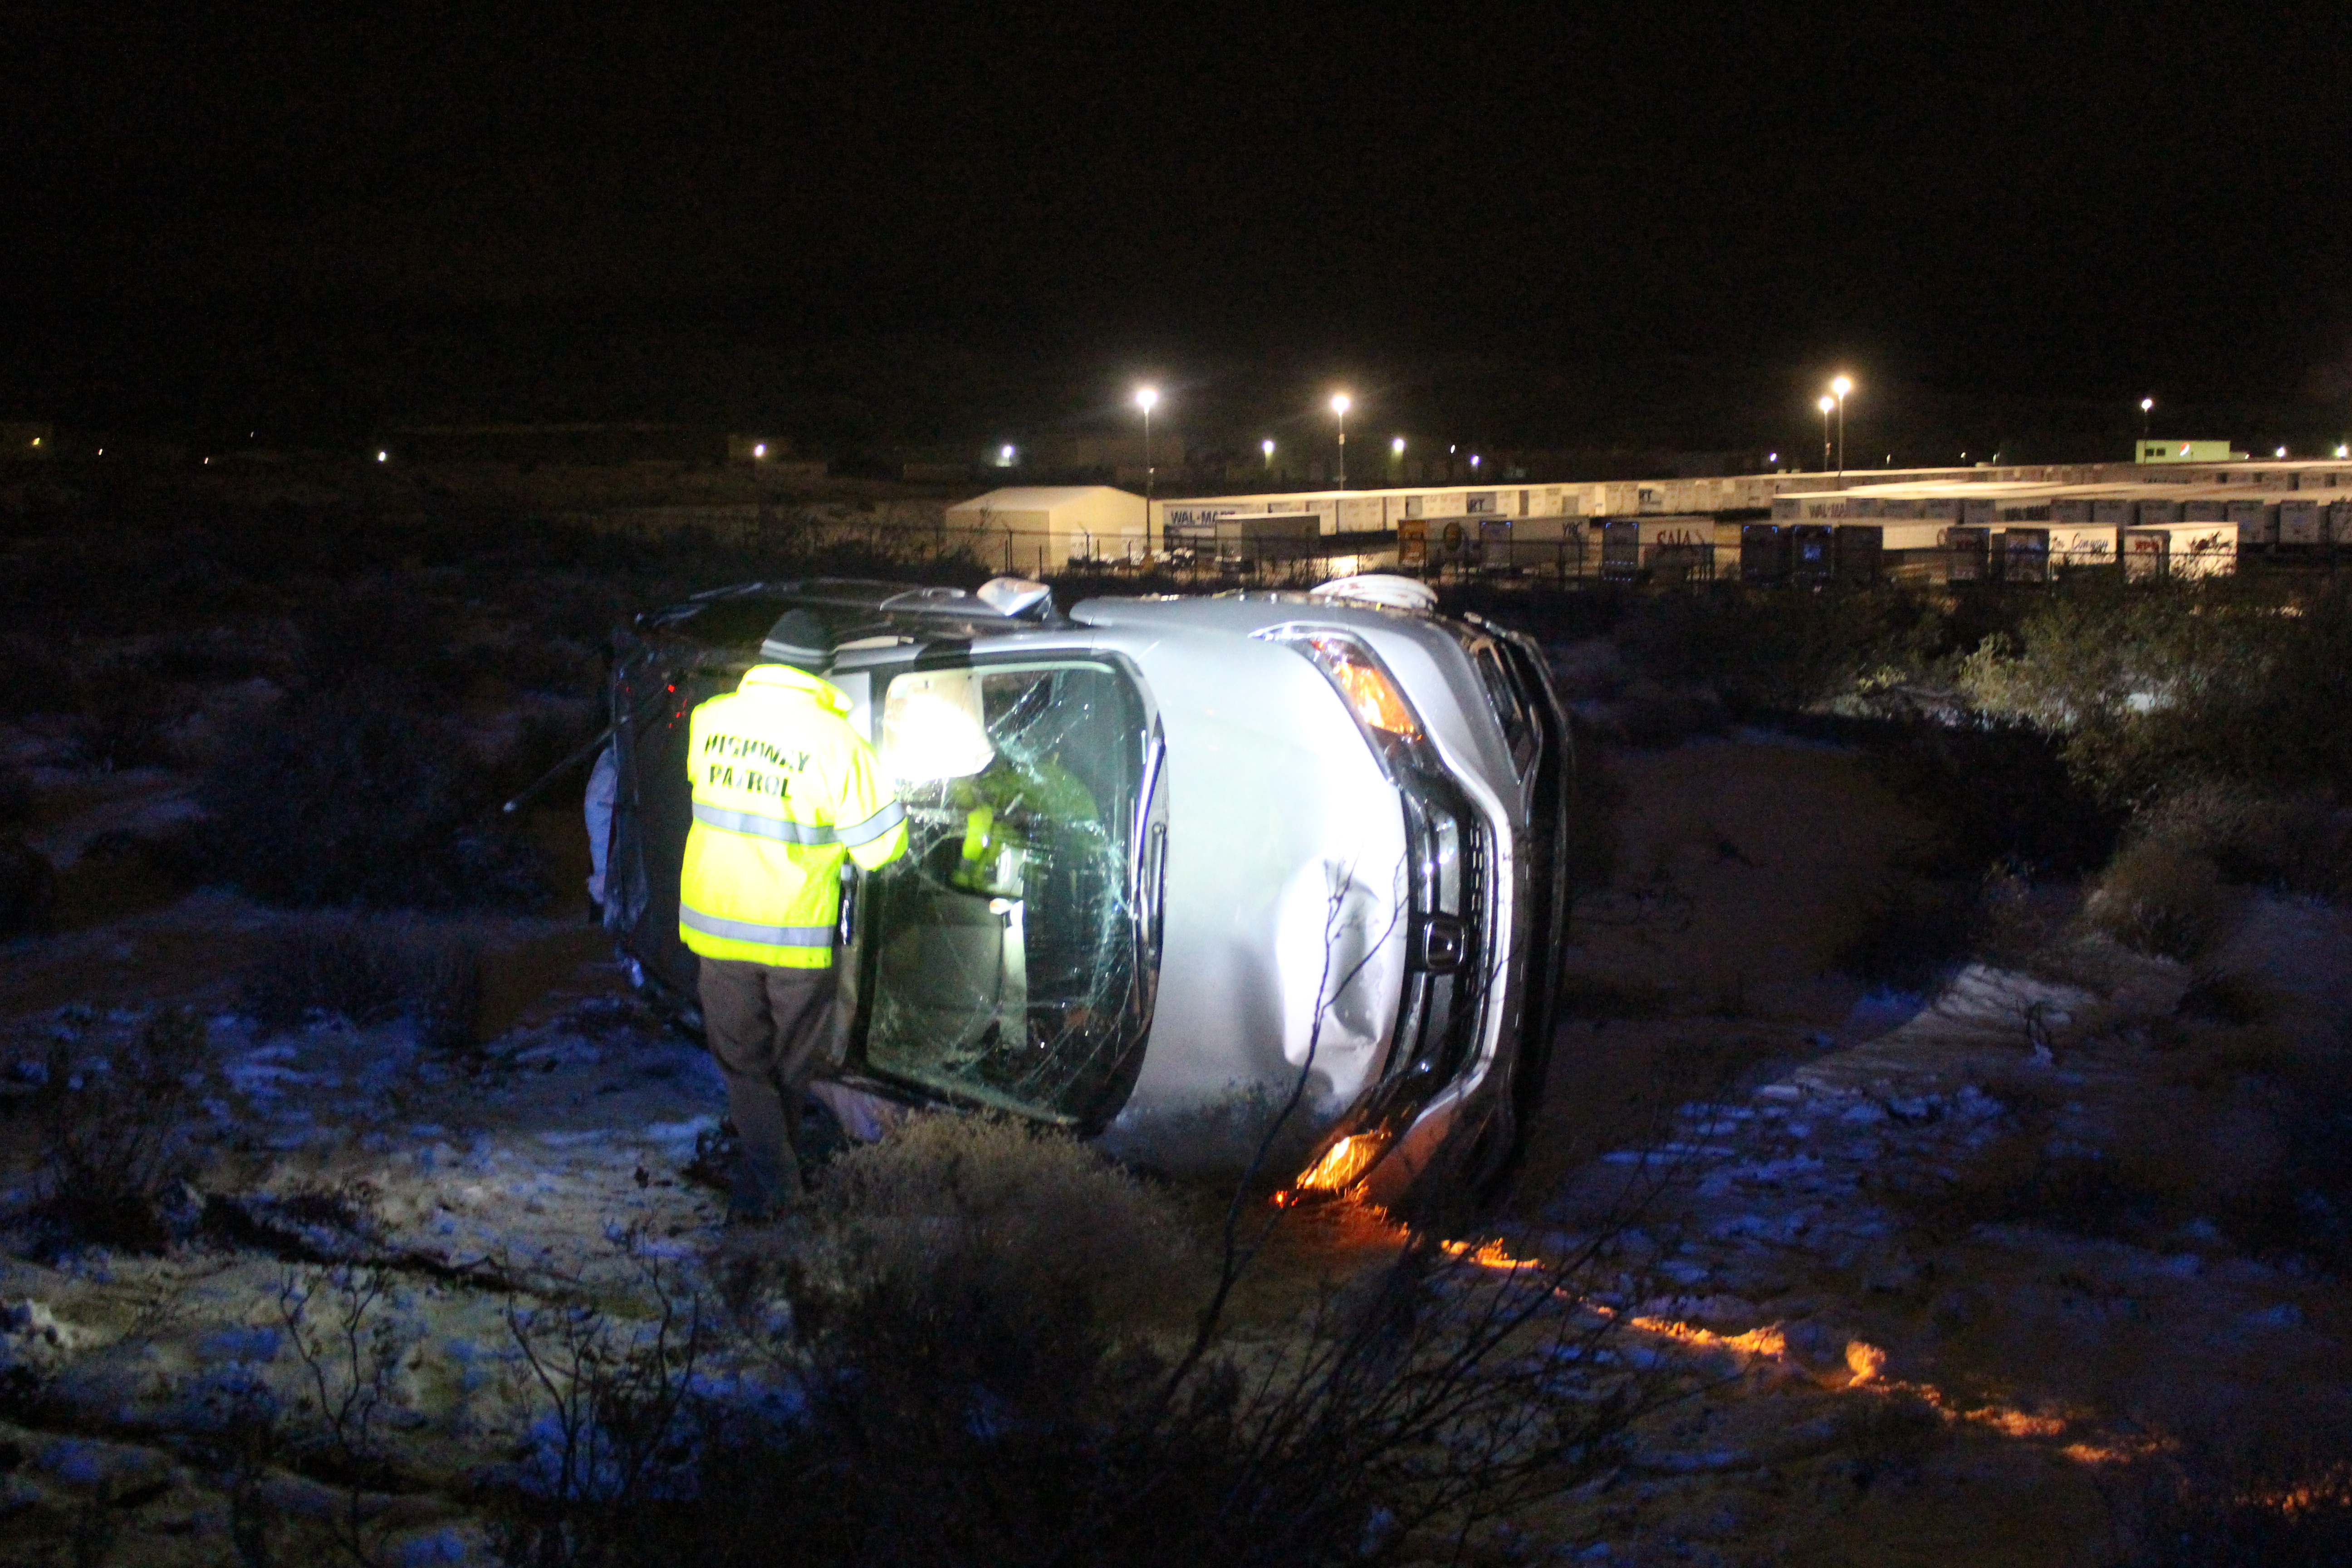 A Utah Hightway Patrol trooper examines a Honda CRV after it rolled in icy conditions on Interstate 15, Washington County, Utah, Jan. 5, 2017 | Photo by Joseph Witham, St. George News